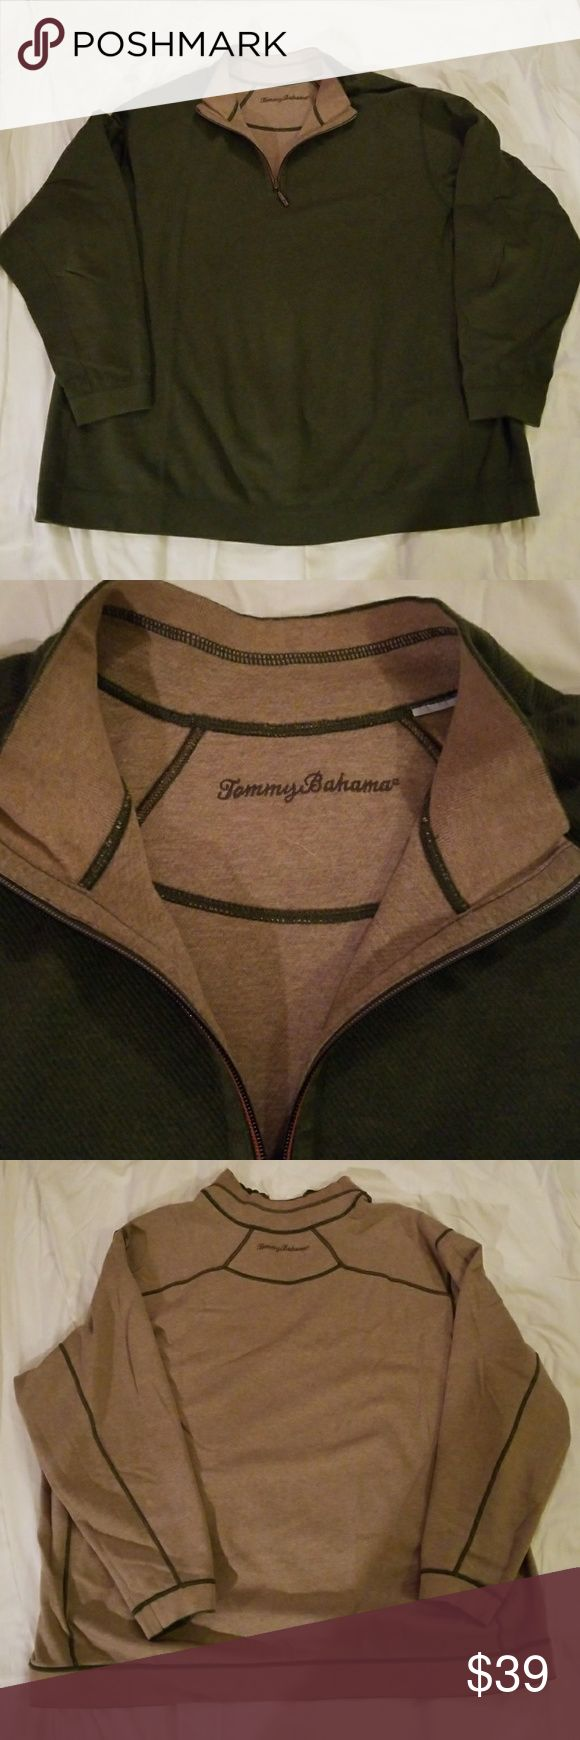 EUC Tommy Bahama reversible sweater 3XB Very gently used men's big & tall Tommy Bahama mock turtleneck half zip sweater size 3XB.  Size tag has been removed as it is reversible.  Camel & green colors. Long sleeve. NO TRADES, OPEN TO OFFERS Tommy Bahama Sweaters Zip Up